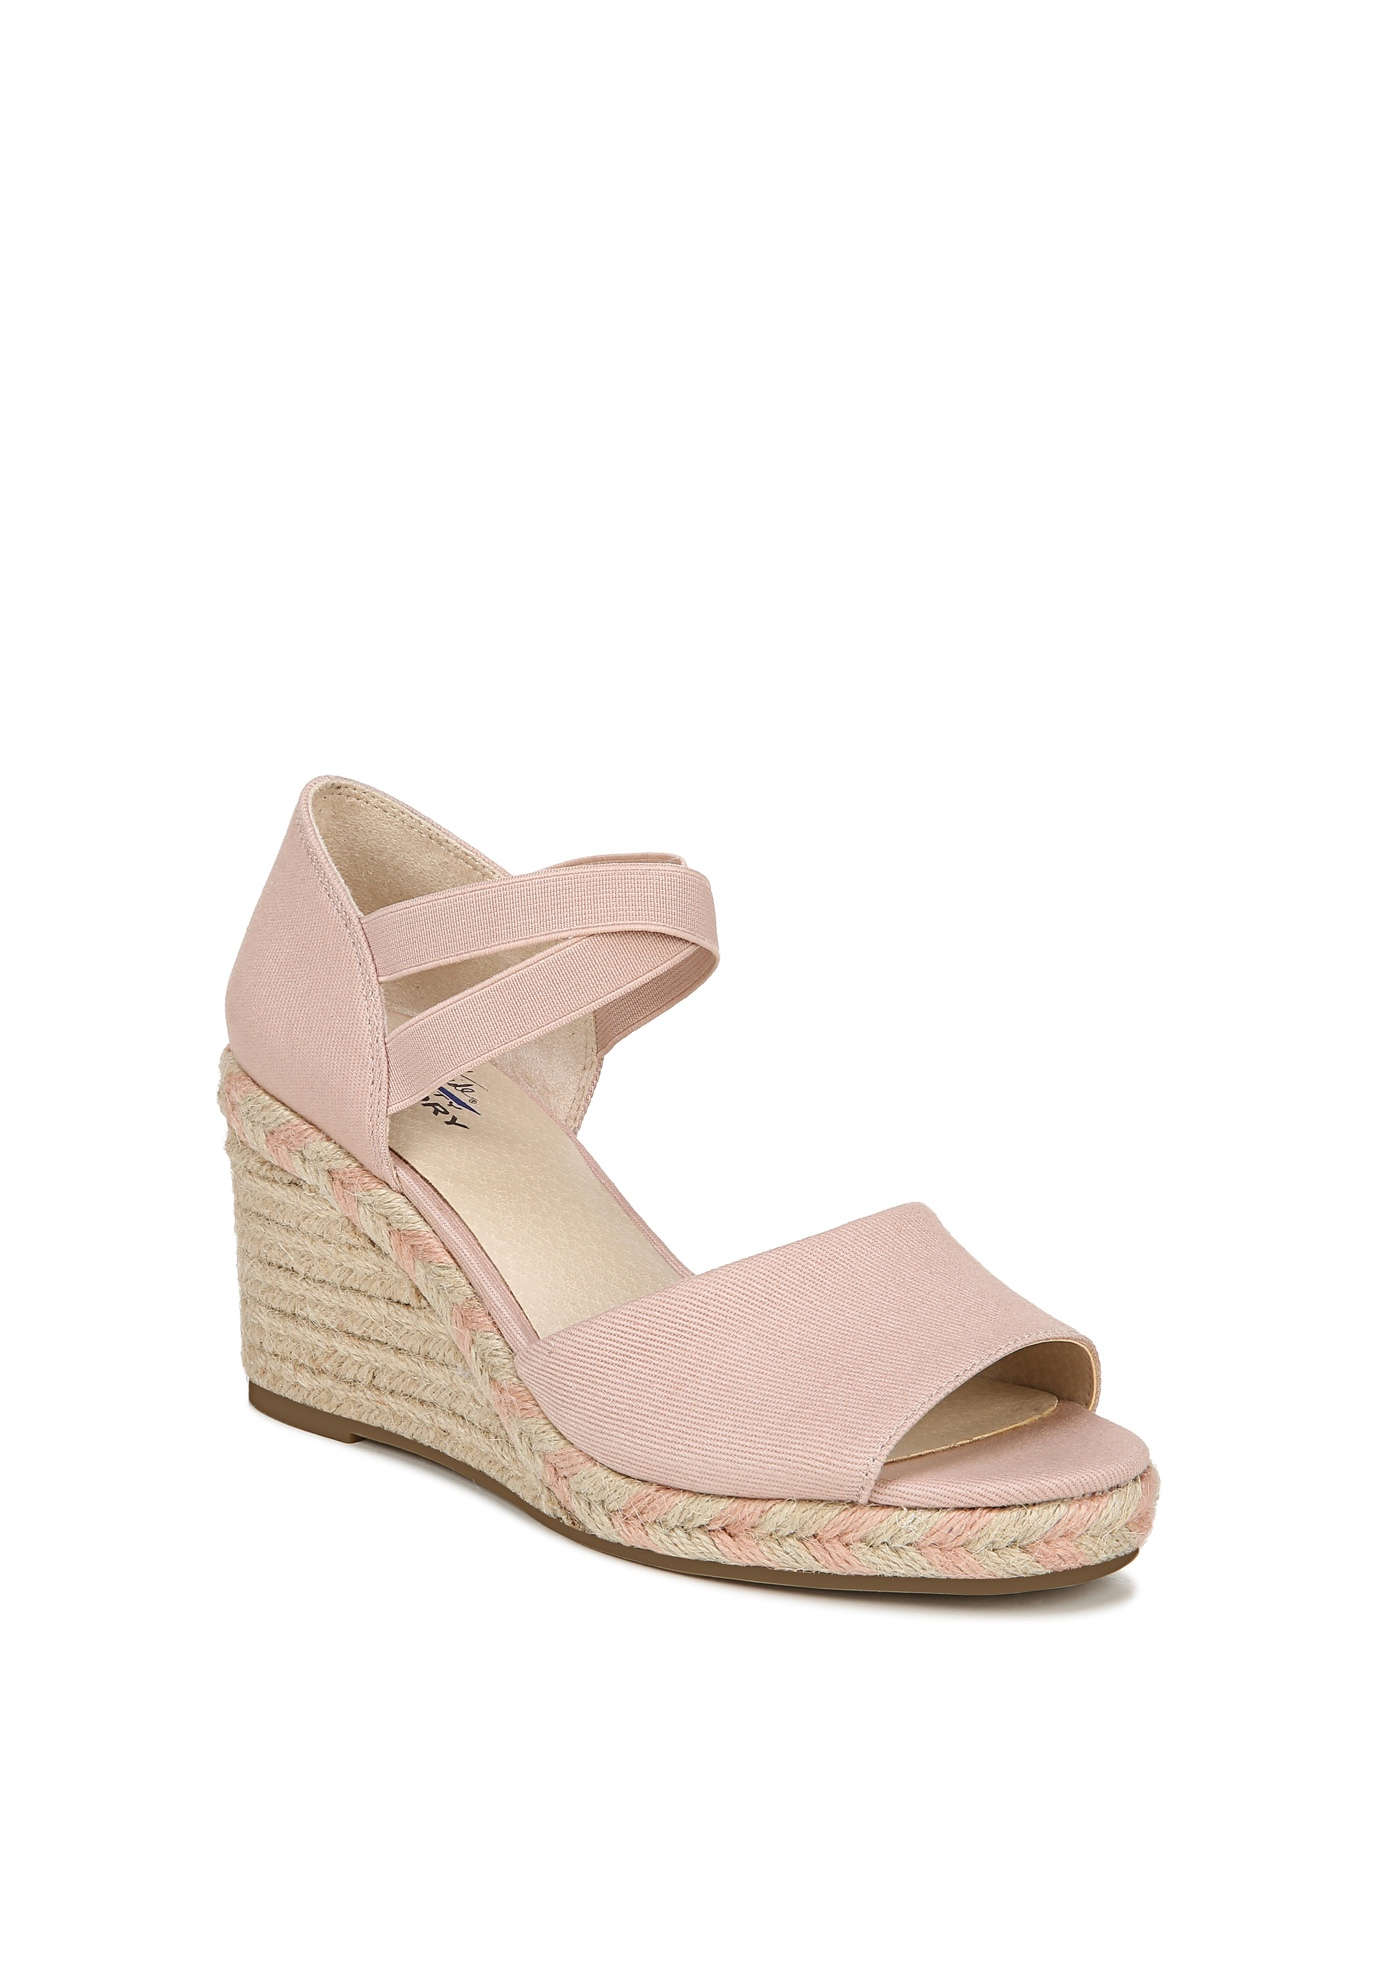 Taffy Wedge by LifeStride,